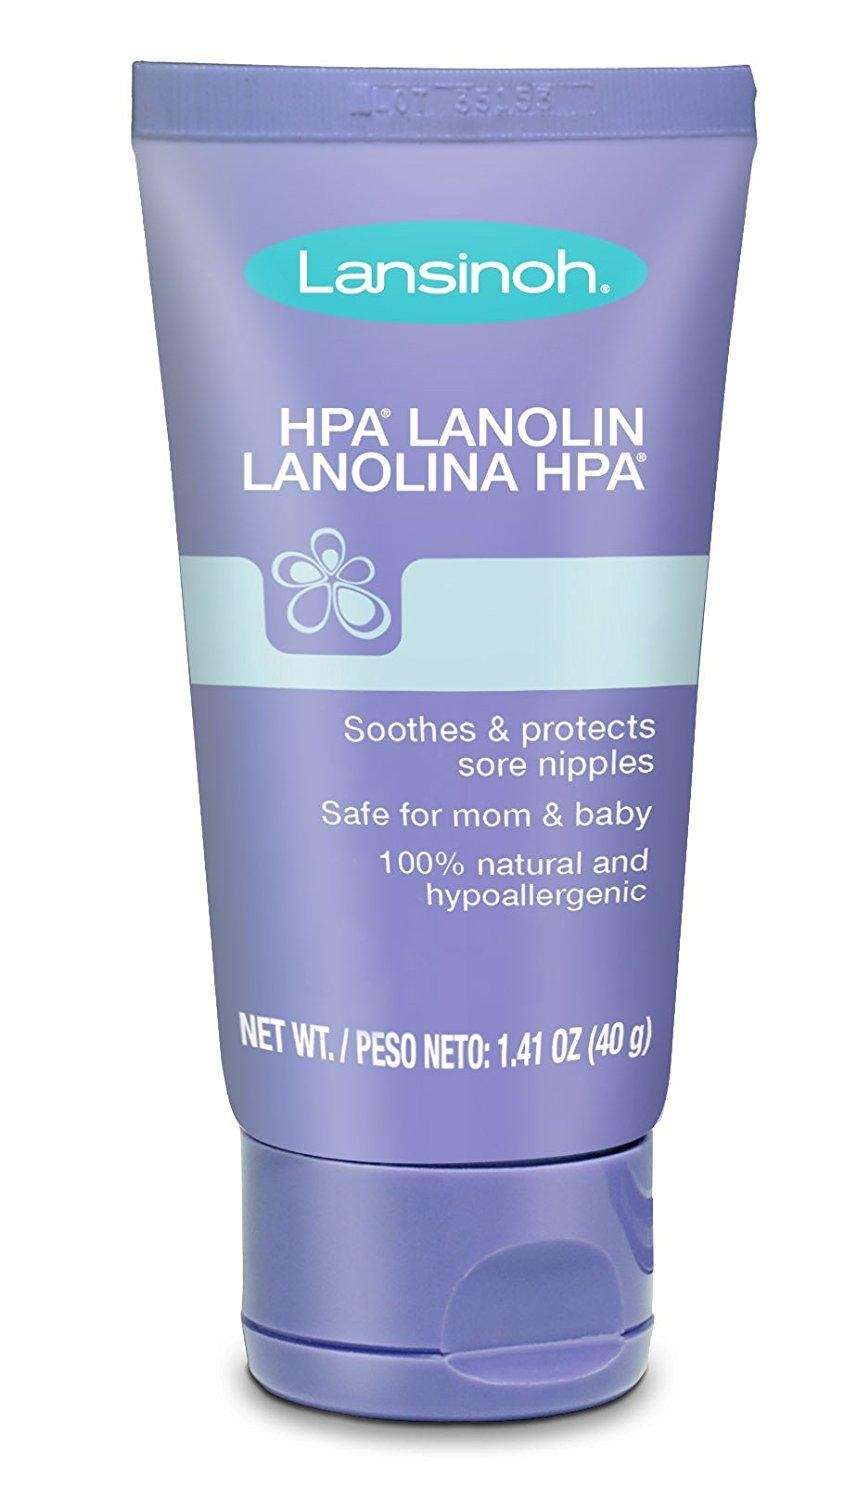 DETAILS: Hypoallergenic, and preservative-free, no need to remove